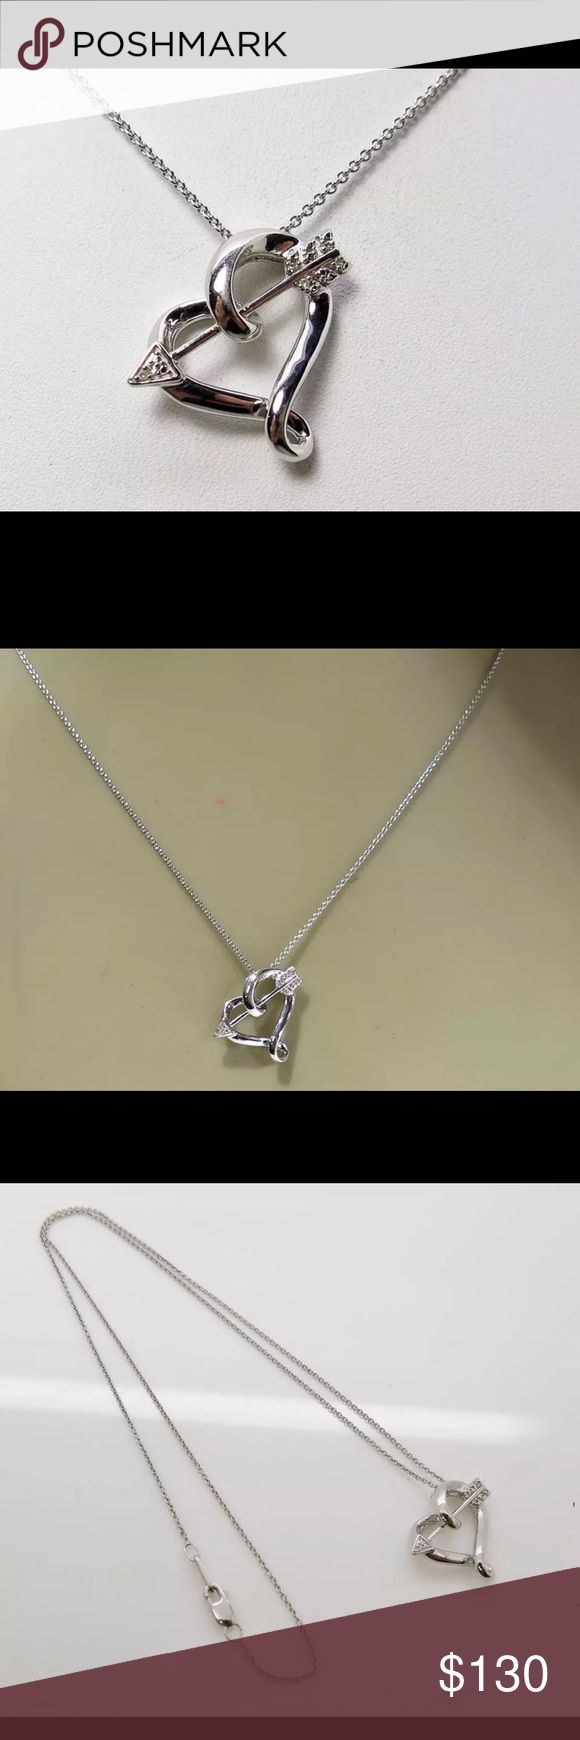 """Solid 925 SS genuine diamond heart necklace Beautiful!!! Solid 925 Sterling Silver genuine diamond heart necklace 4.4g with 18"""" chain 925 Jewelry Necklaces"""